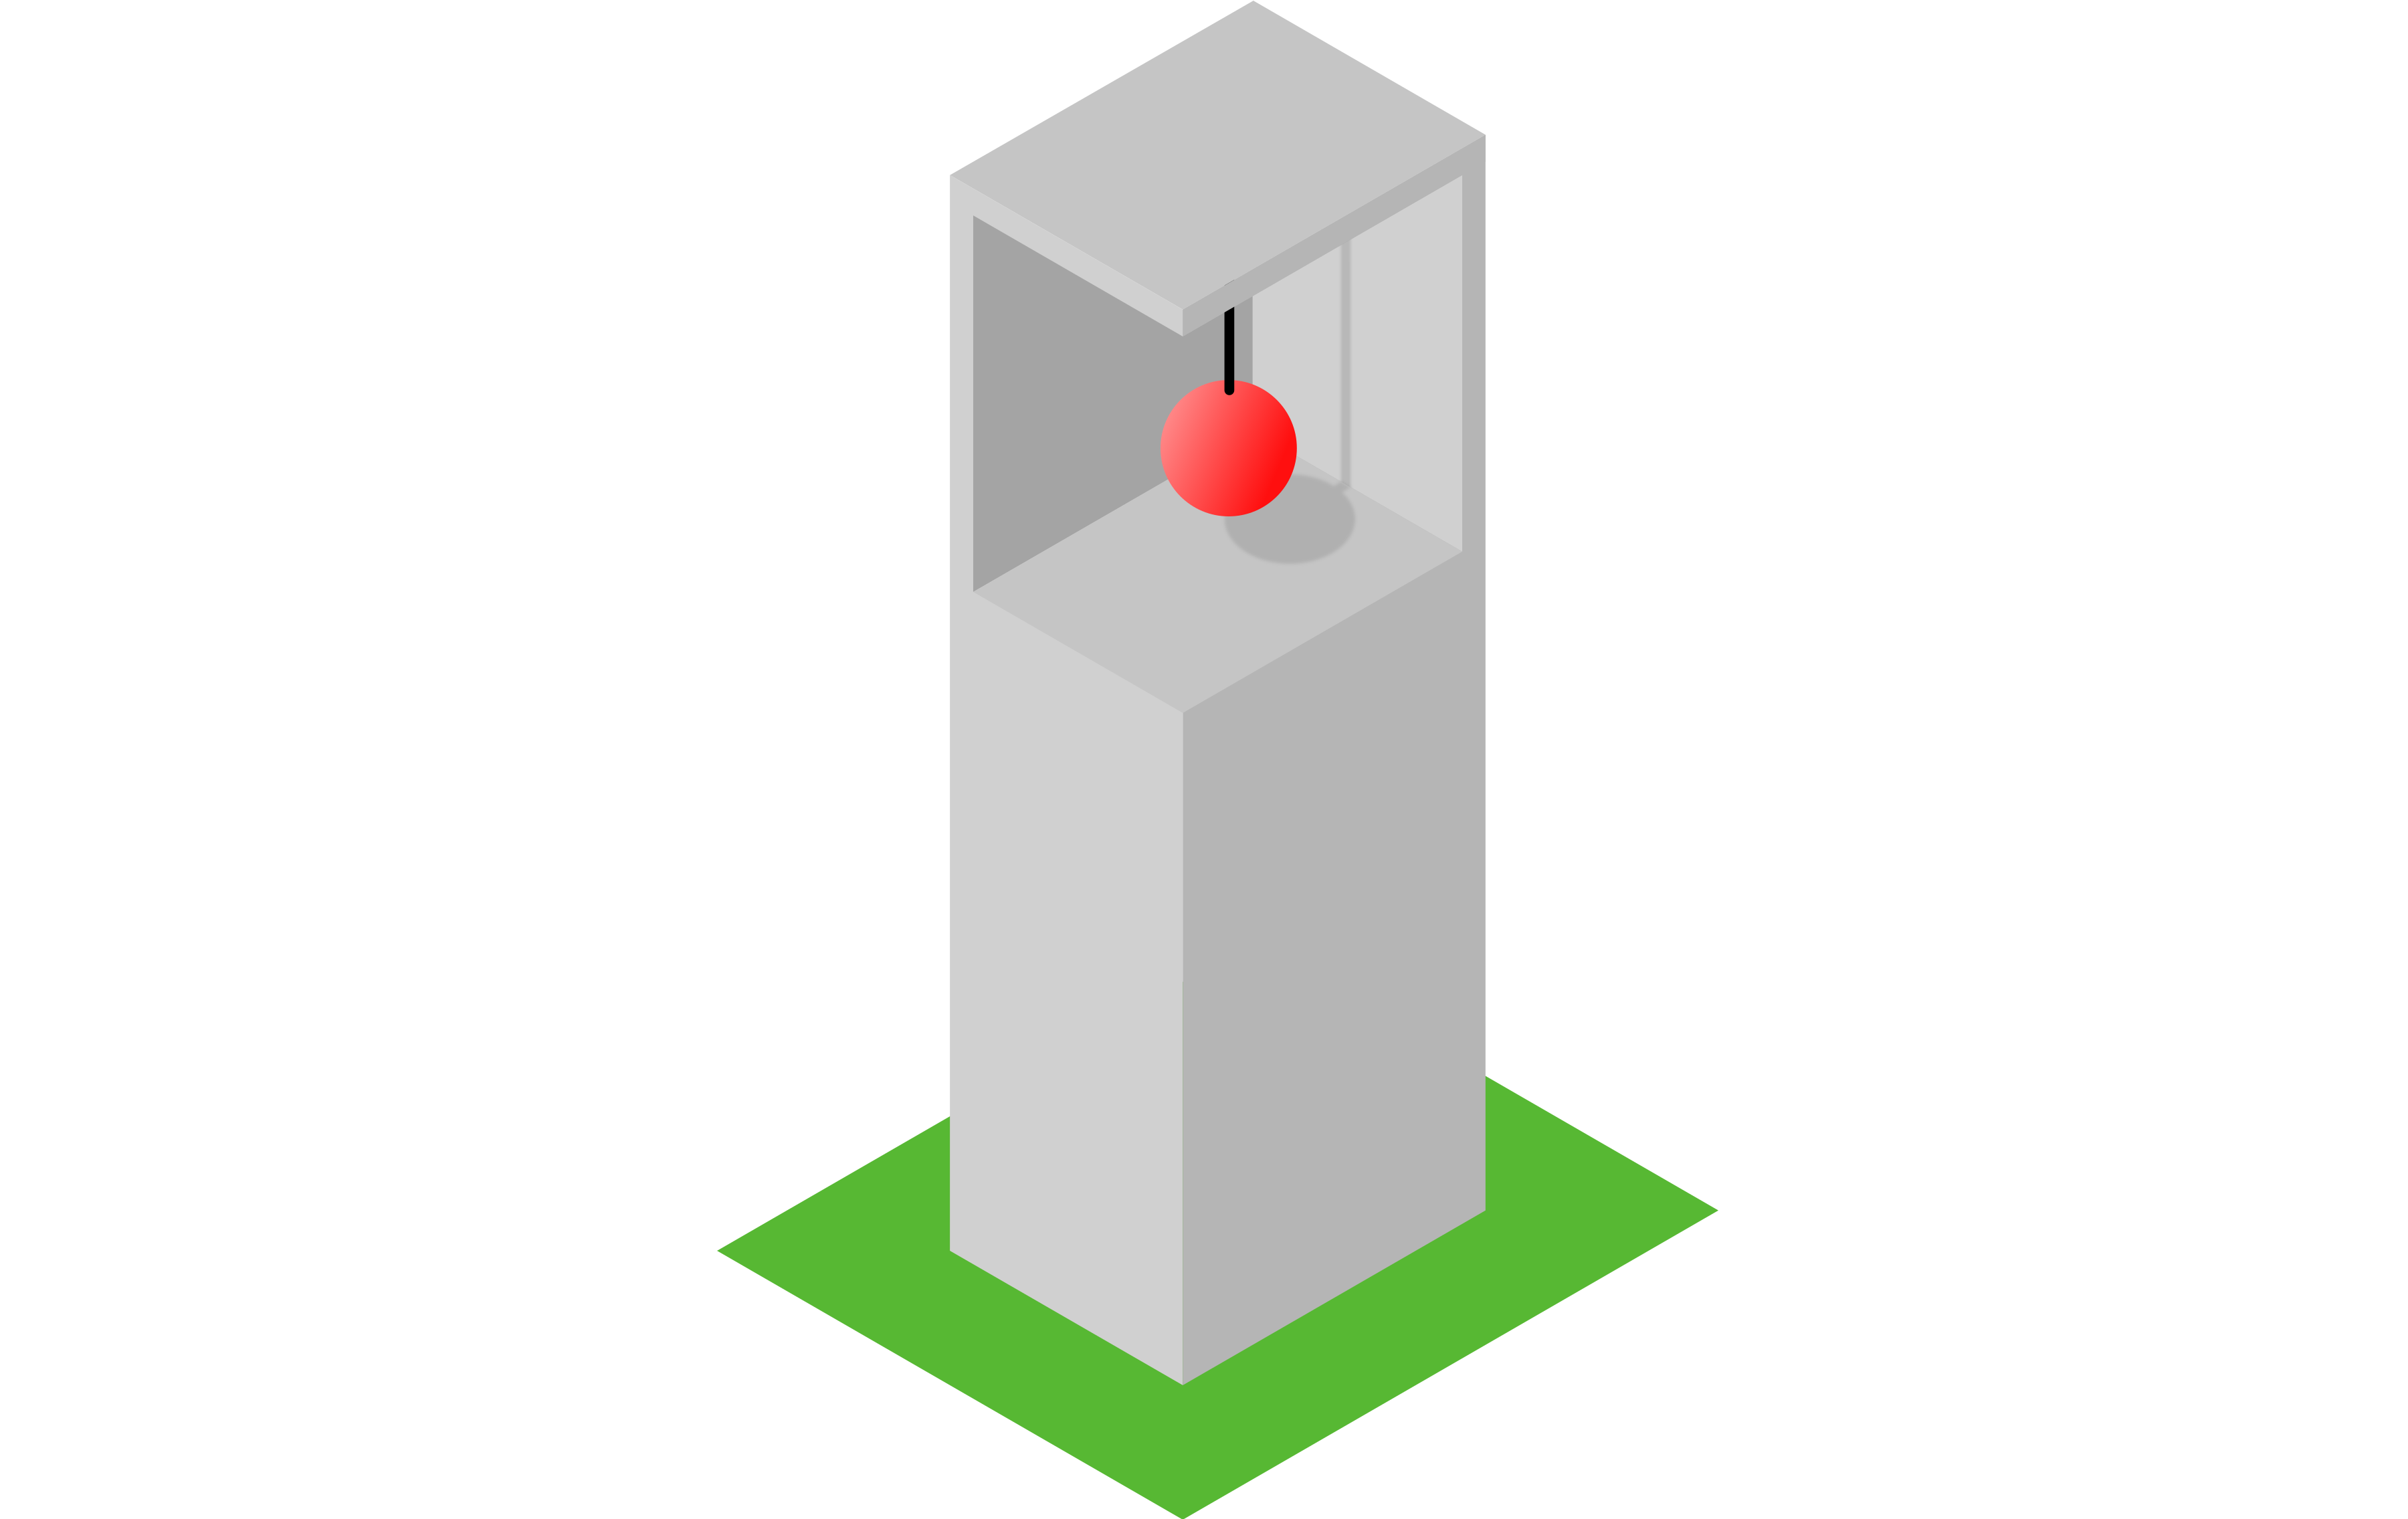 Simplified example of a TMD: A pendulum in a tall building can counteract swaying vibrations.